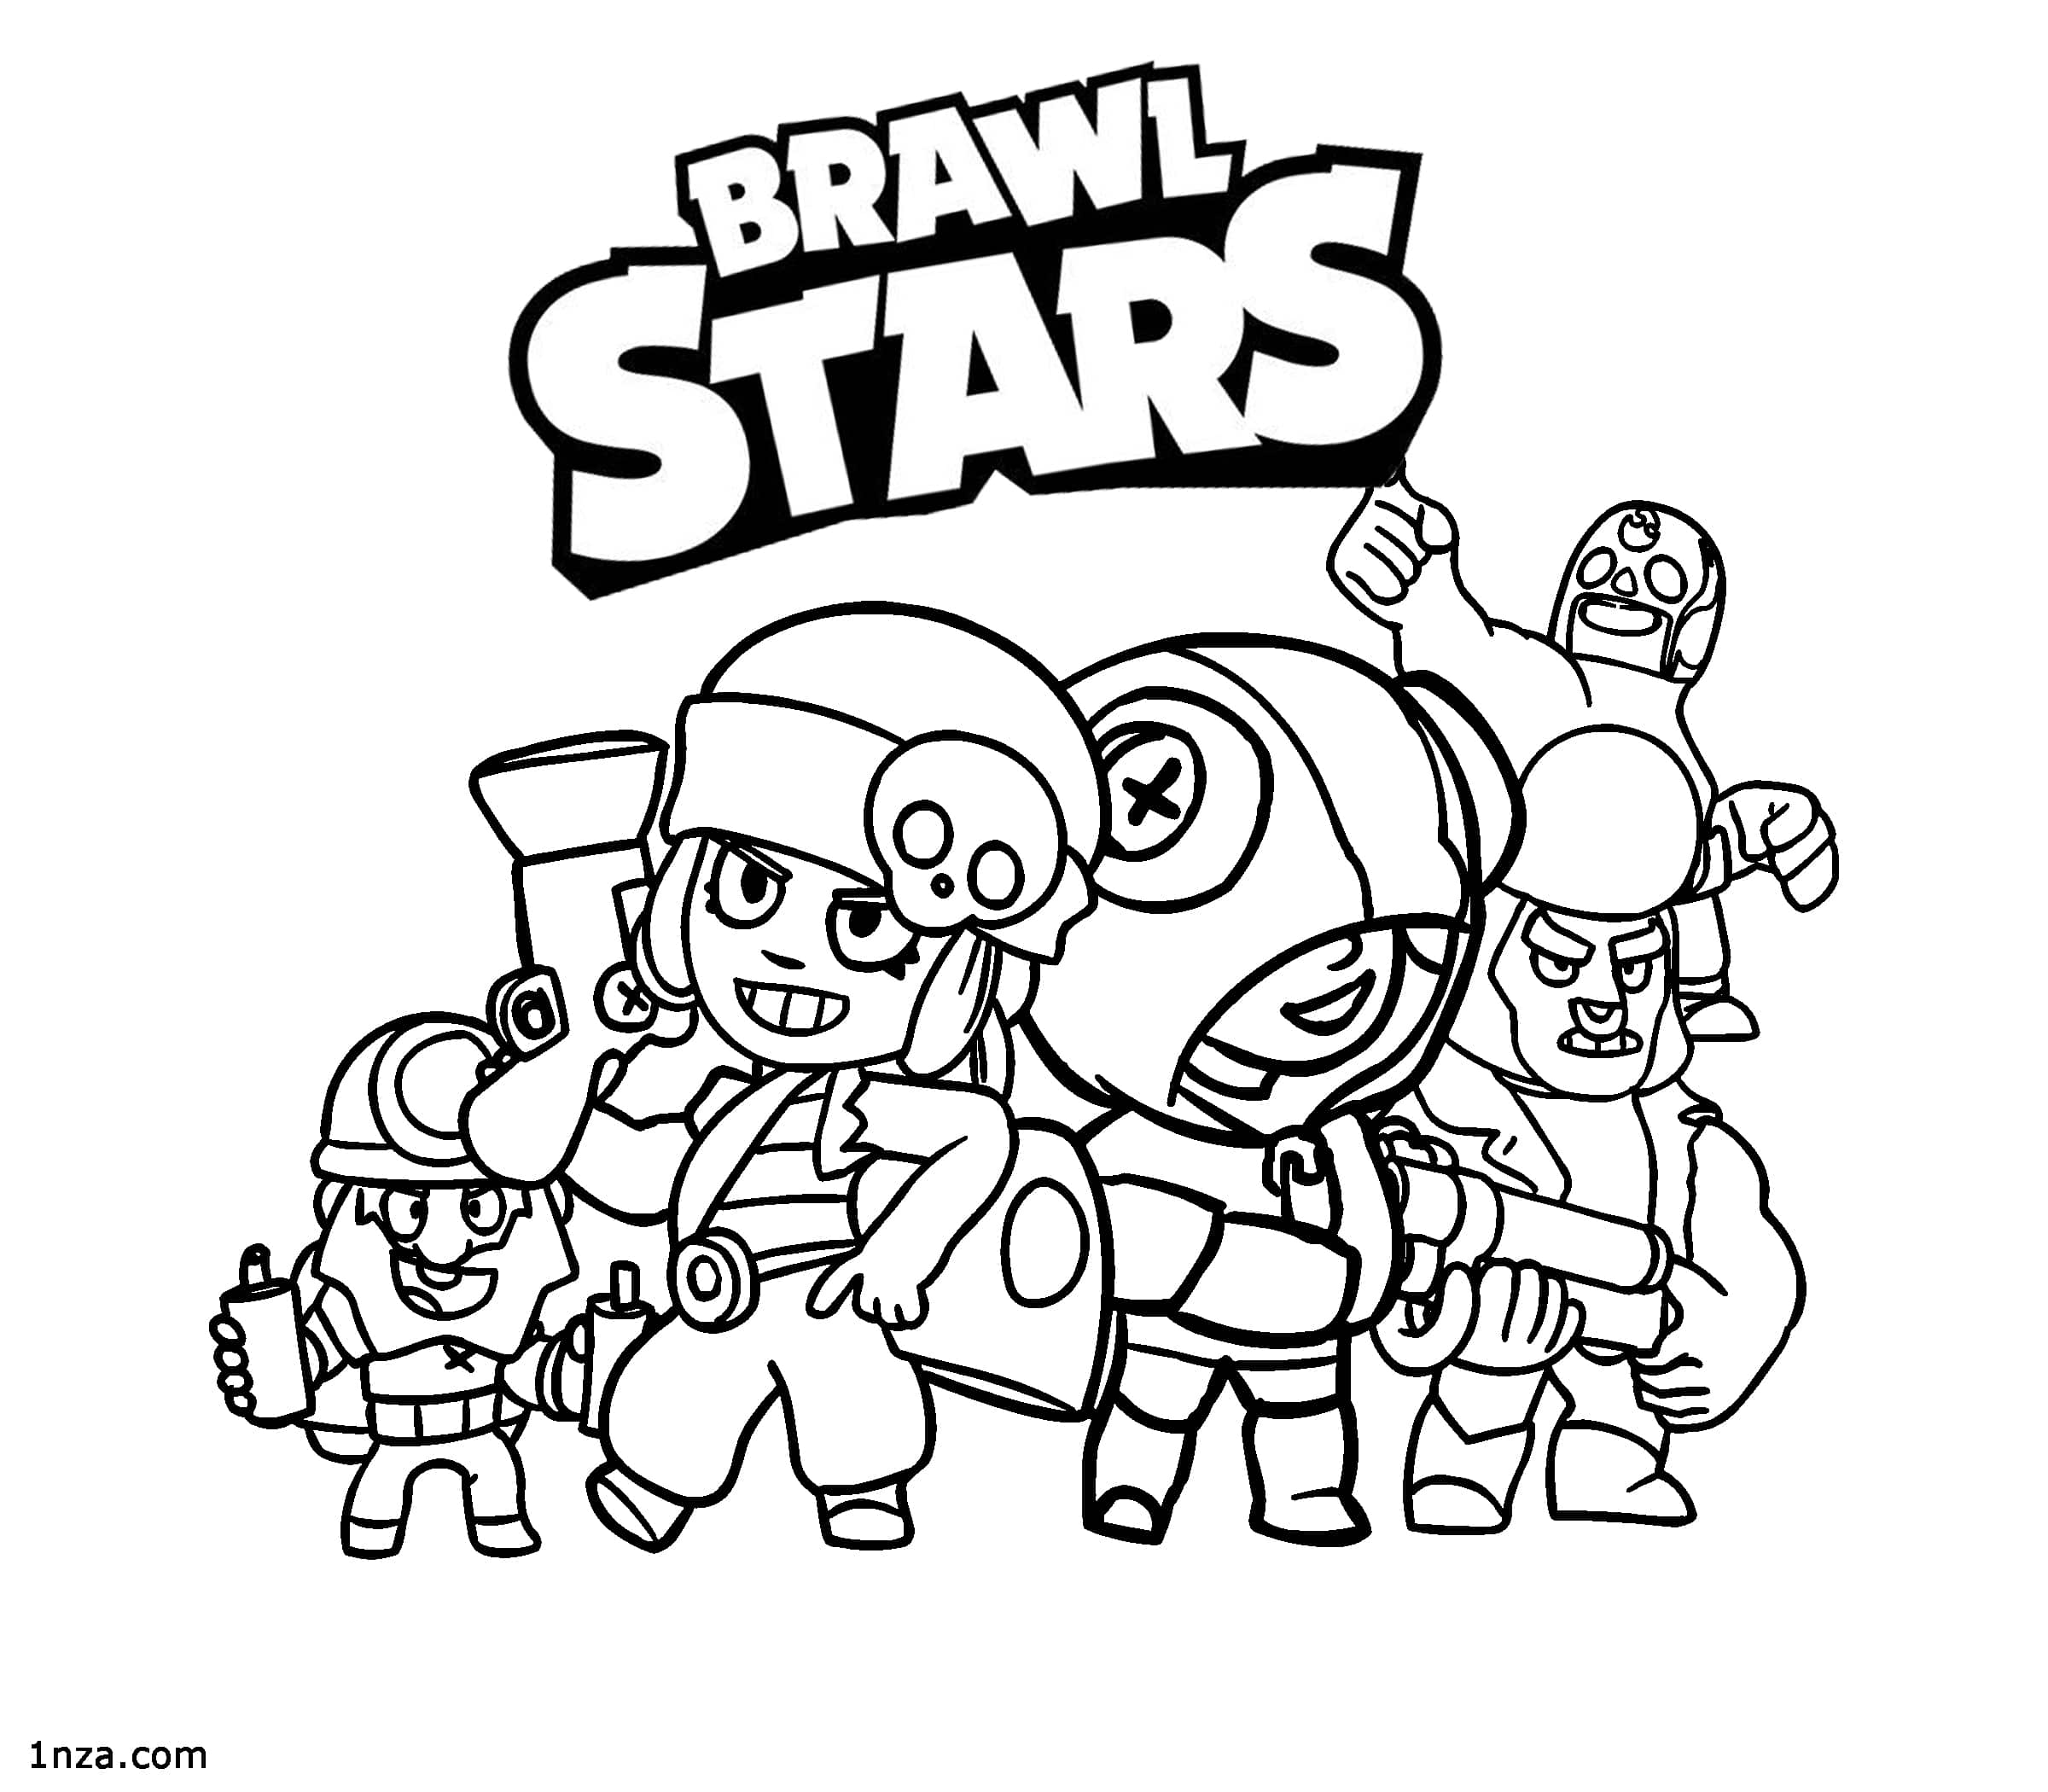 brawl star coloring brawl stars coloring pages free printable coloring pages star coloring brawl